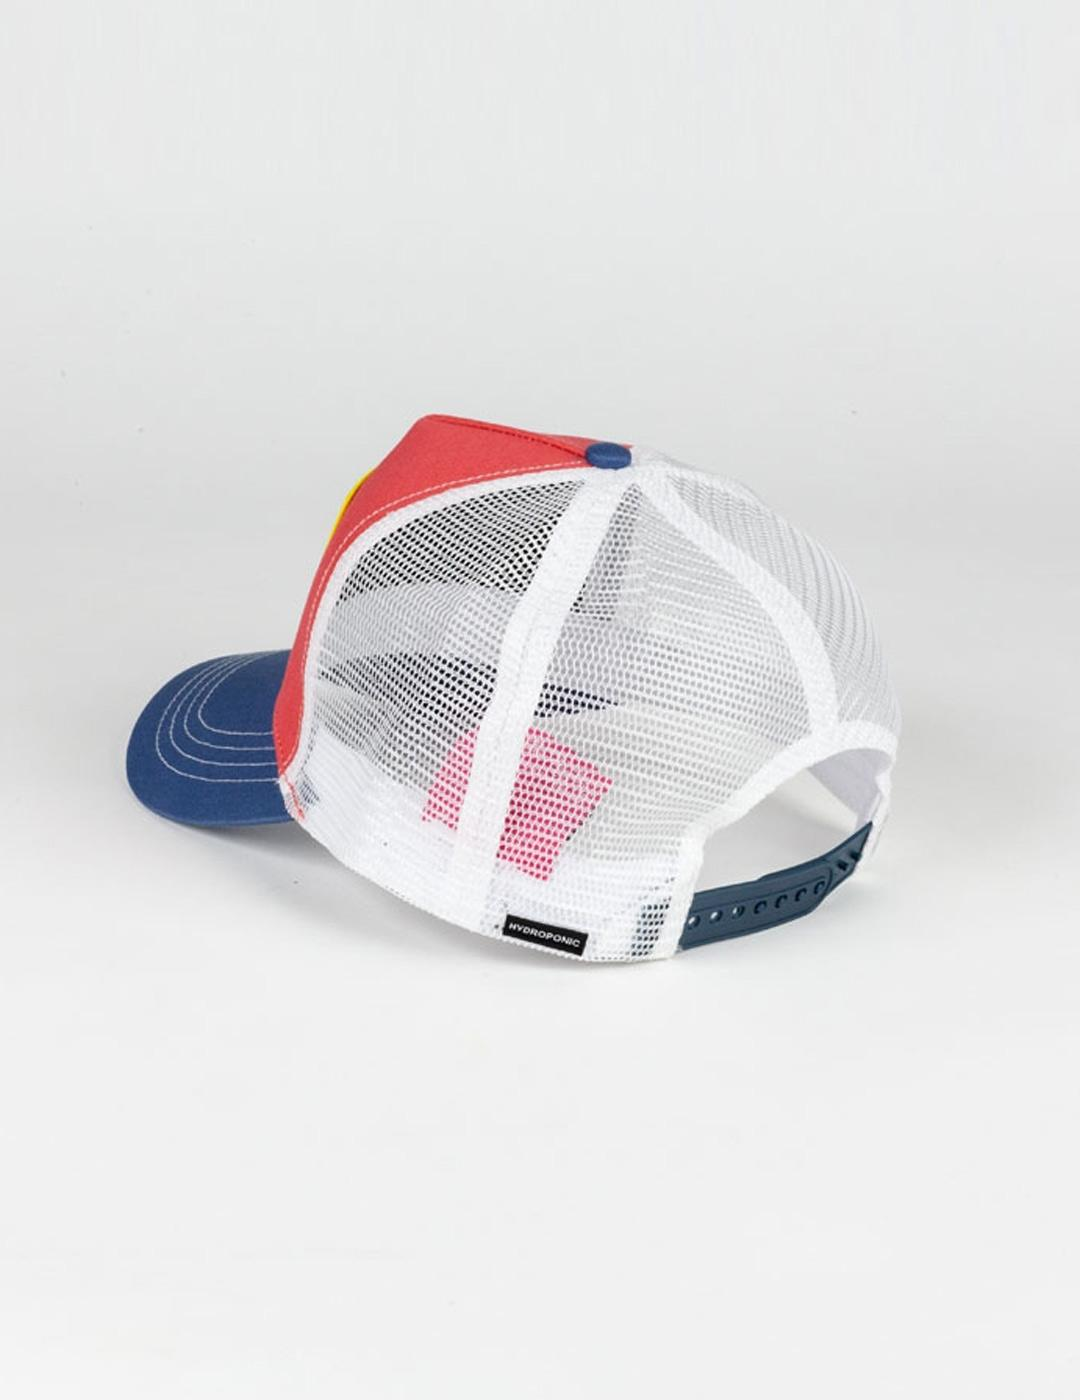 Gorra HYDROPONIC FUN PINK HEAD - Coral / Blue / White